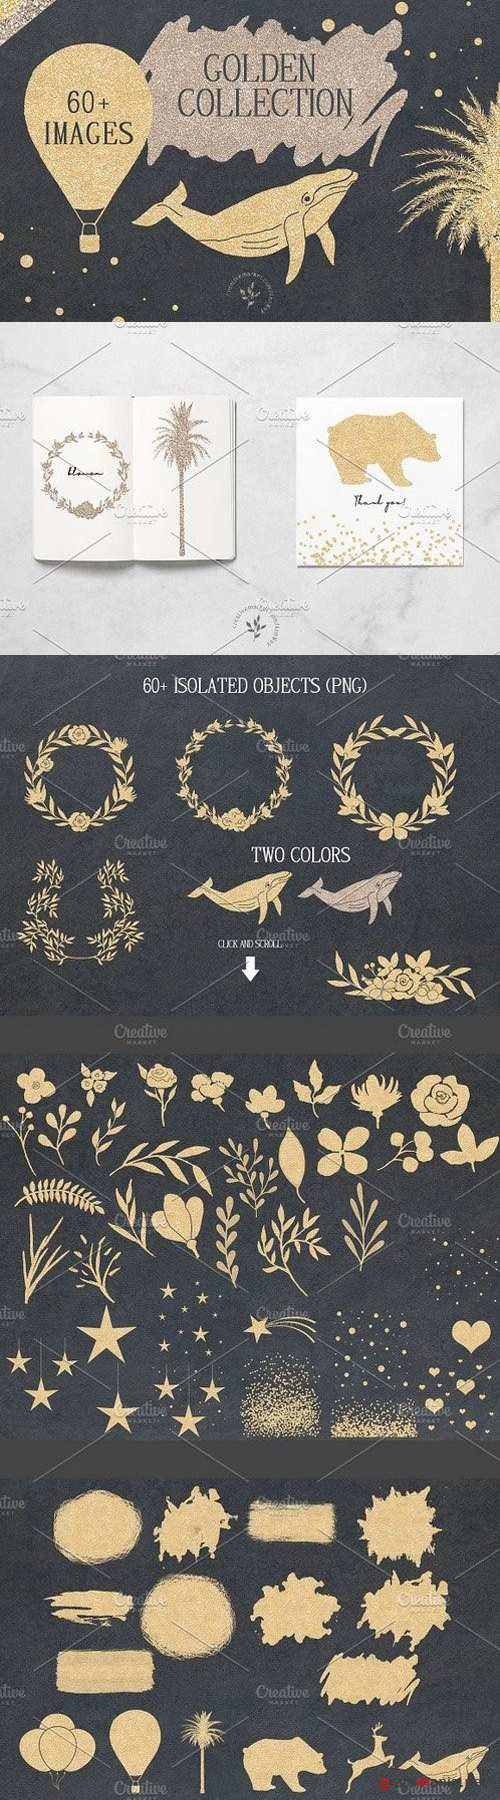 Golden Collection 1167959